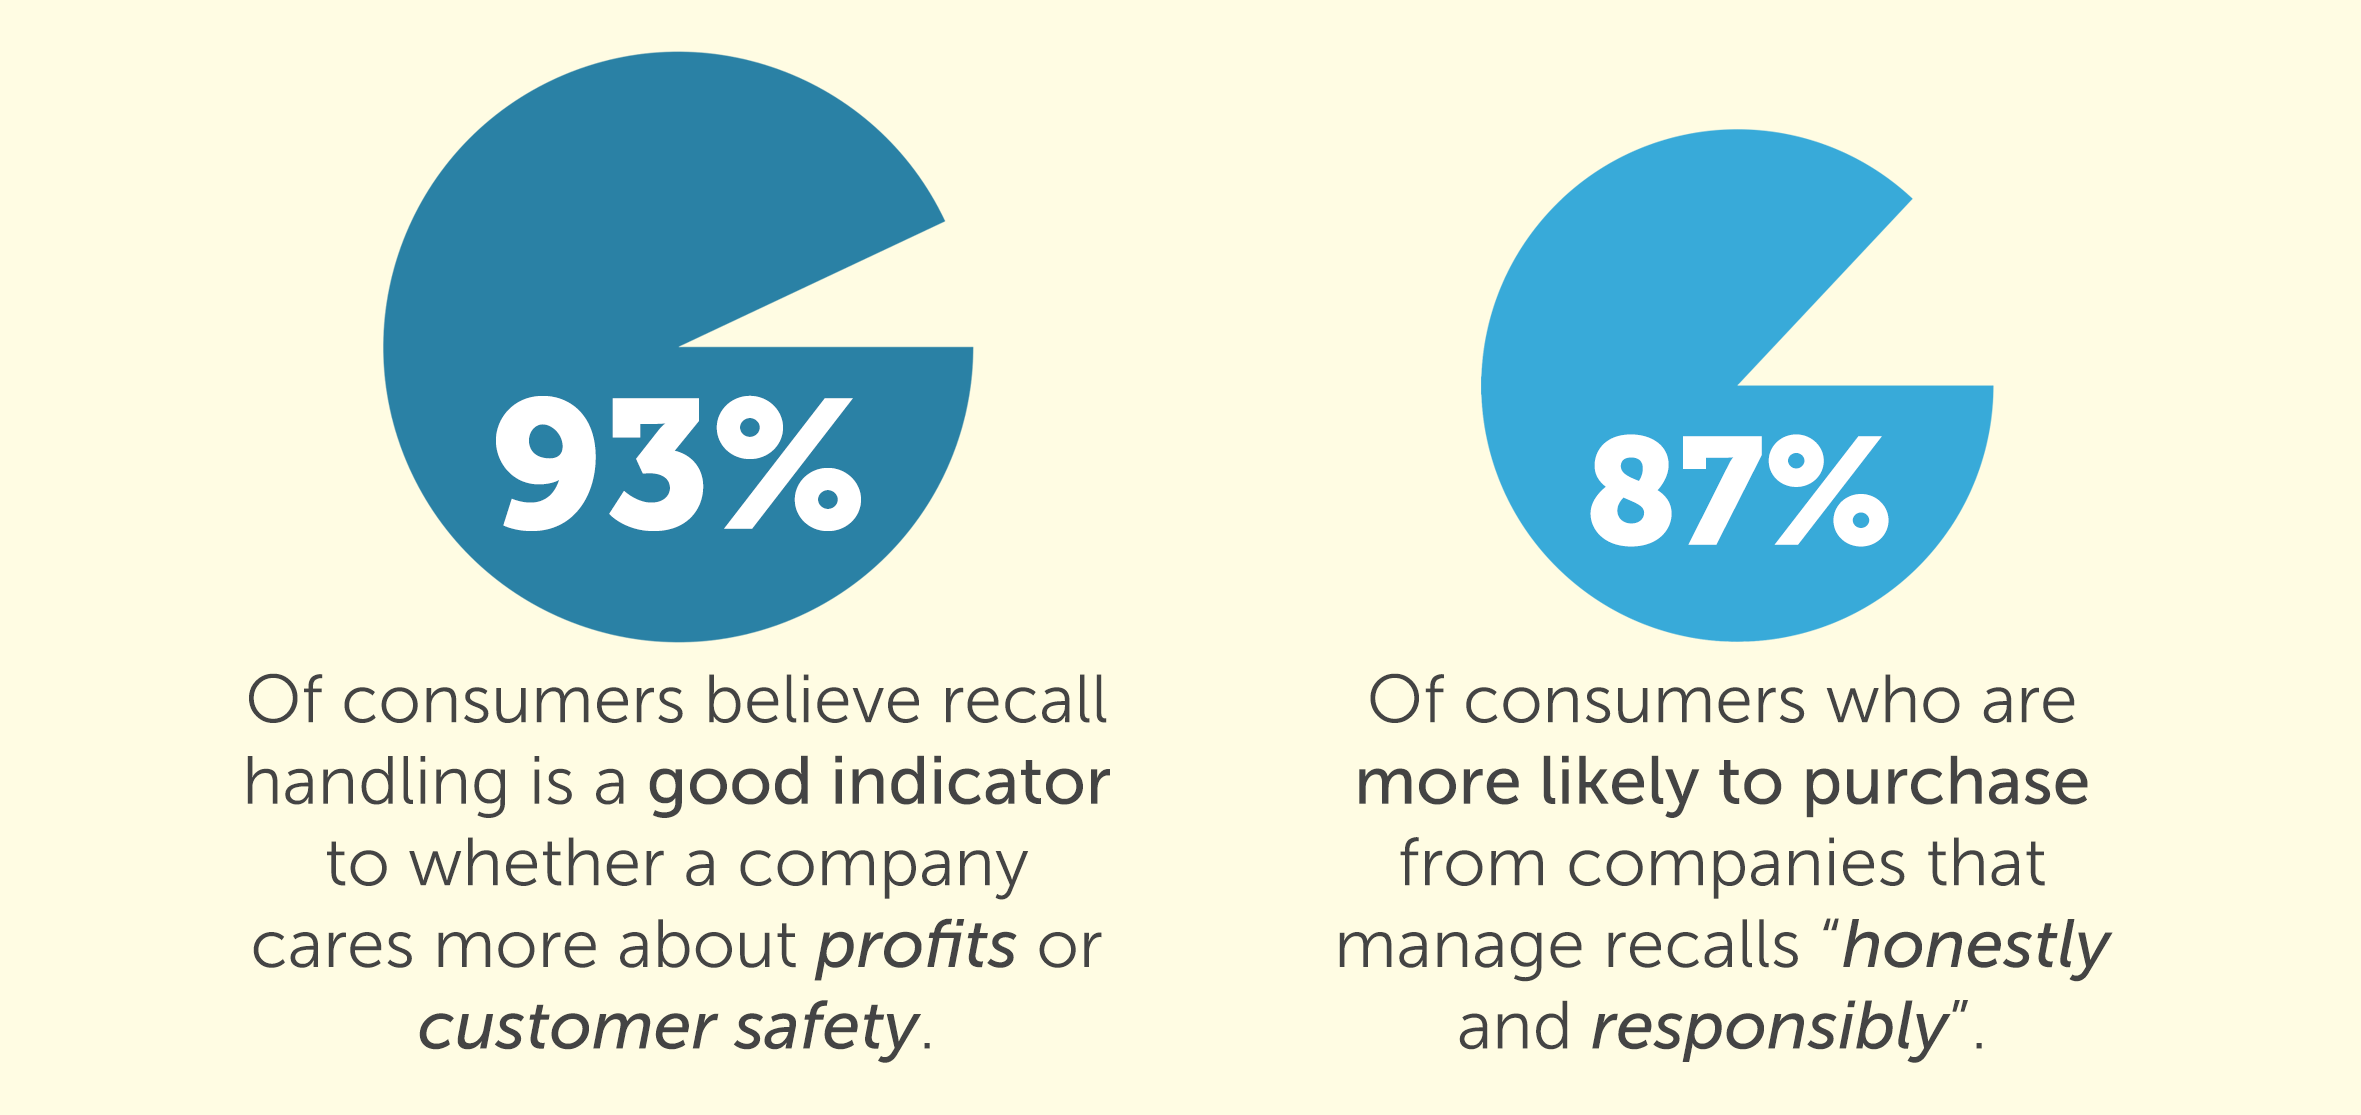 Consumers heavily favor companies who handle recalls honestly and responsibly